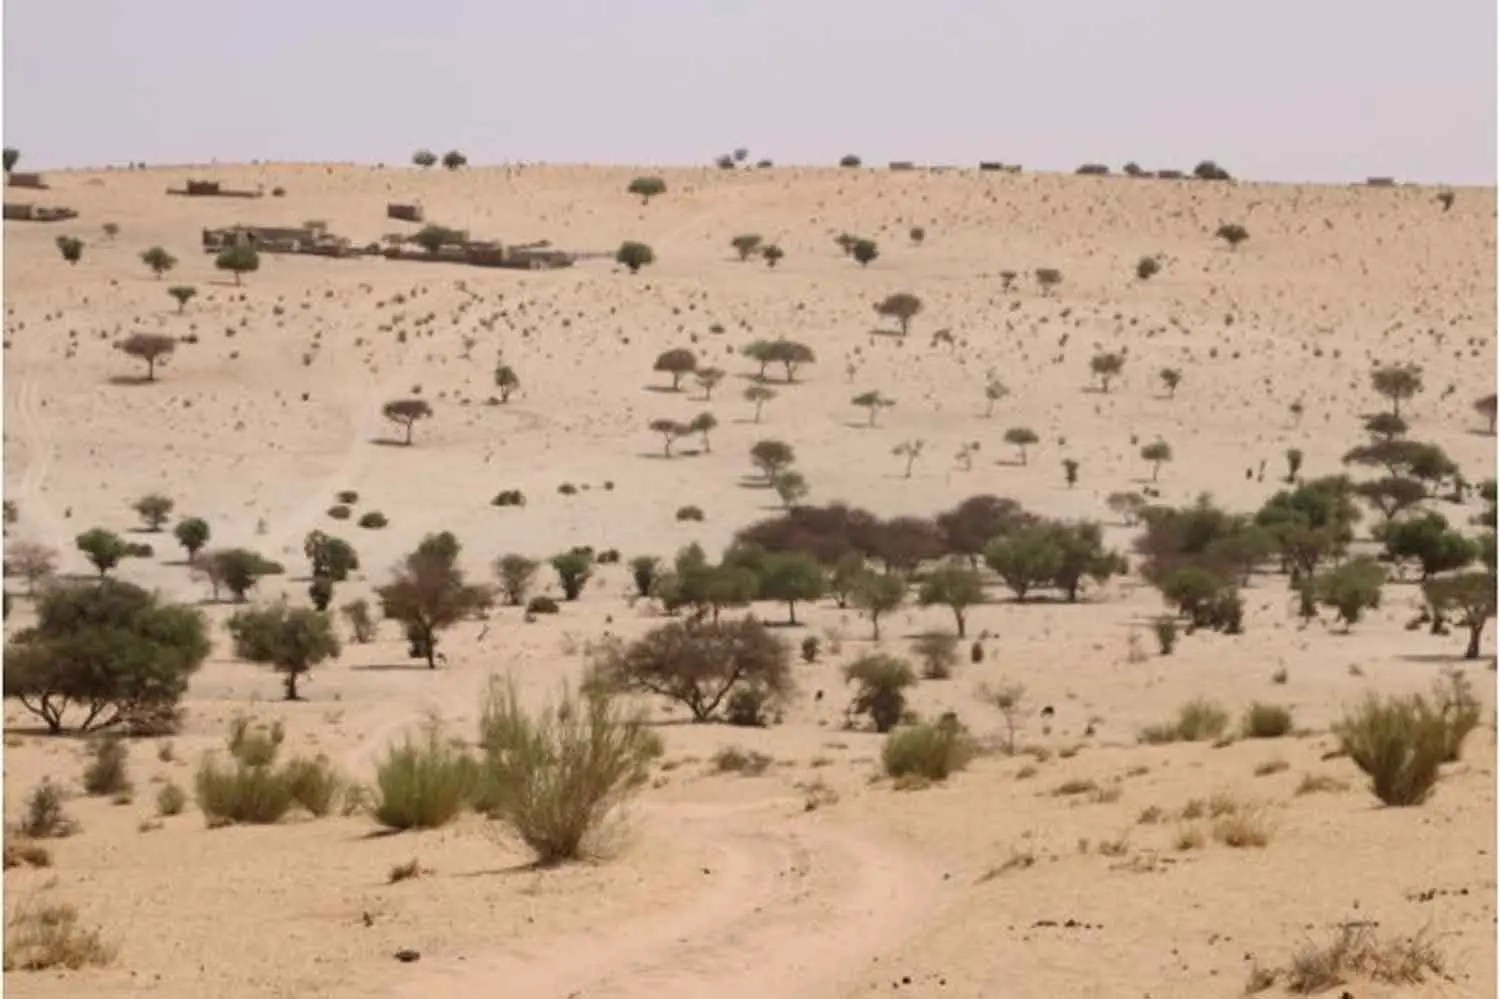 Desertification: NESREA urges Gombe communities to allocate land for tree planting - Vanguard